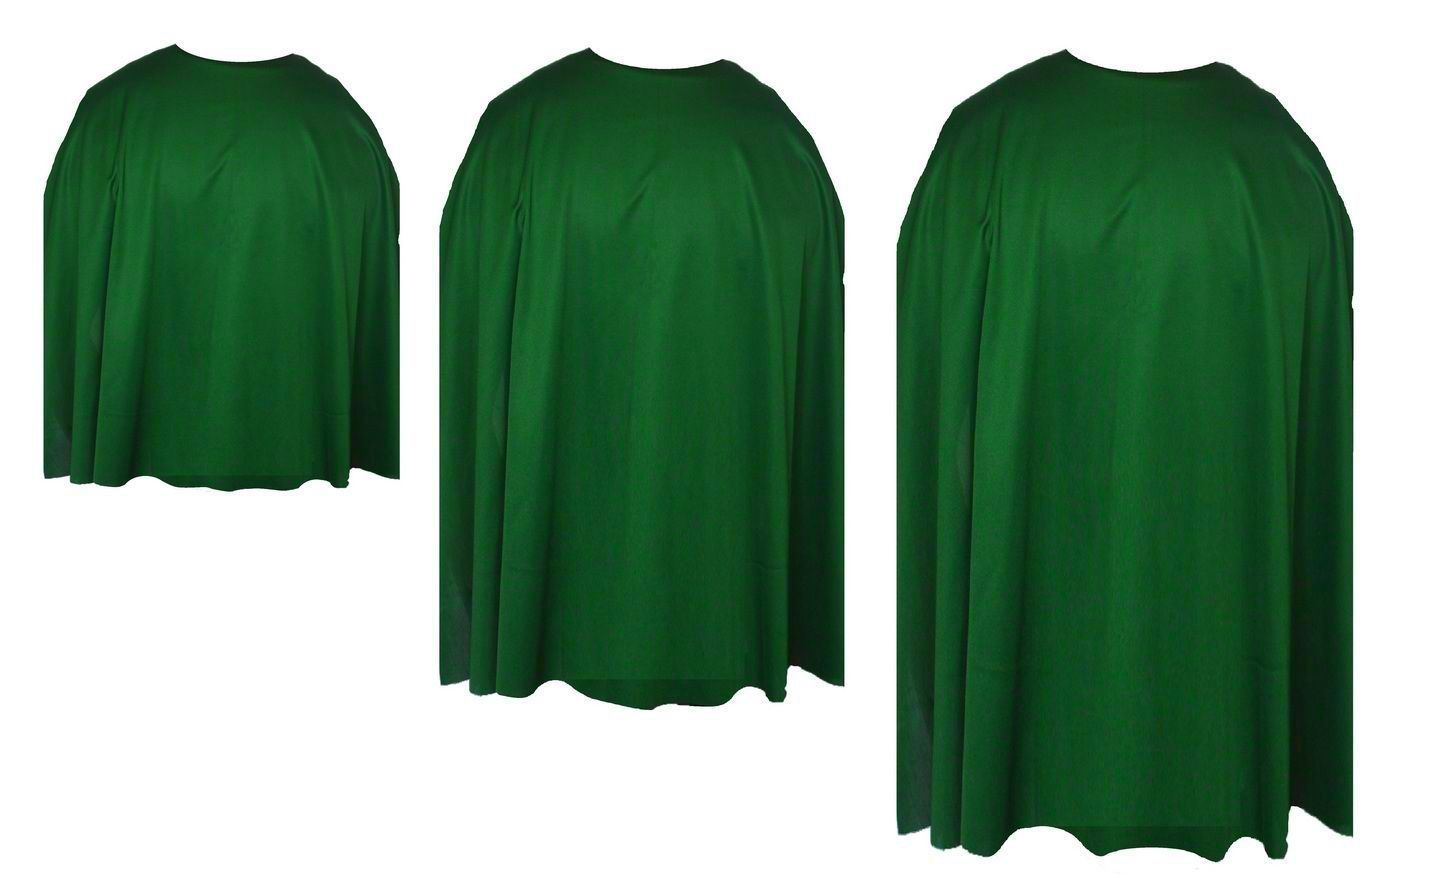 Emerald green capes